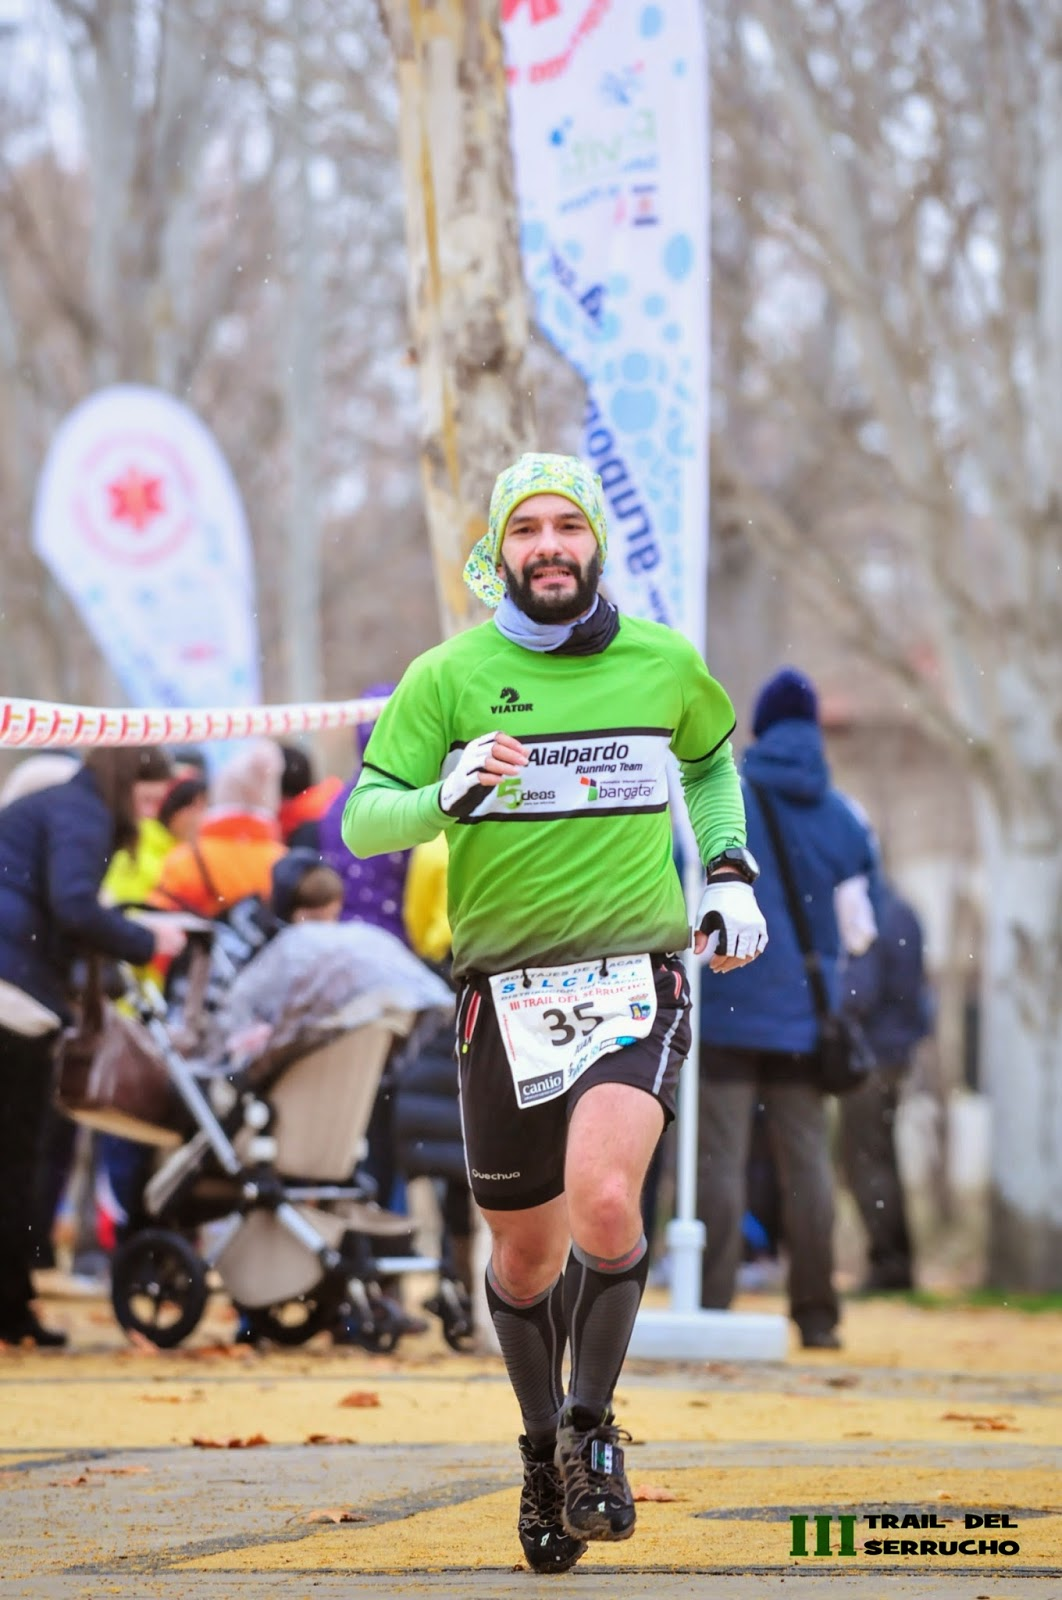 Trail running Madrid  III Trail del Serrucho 2015